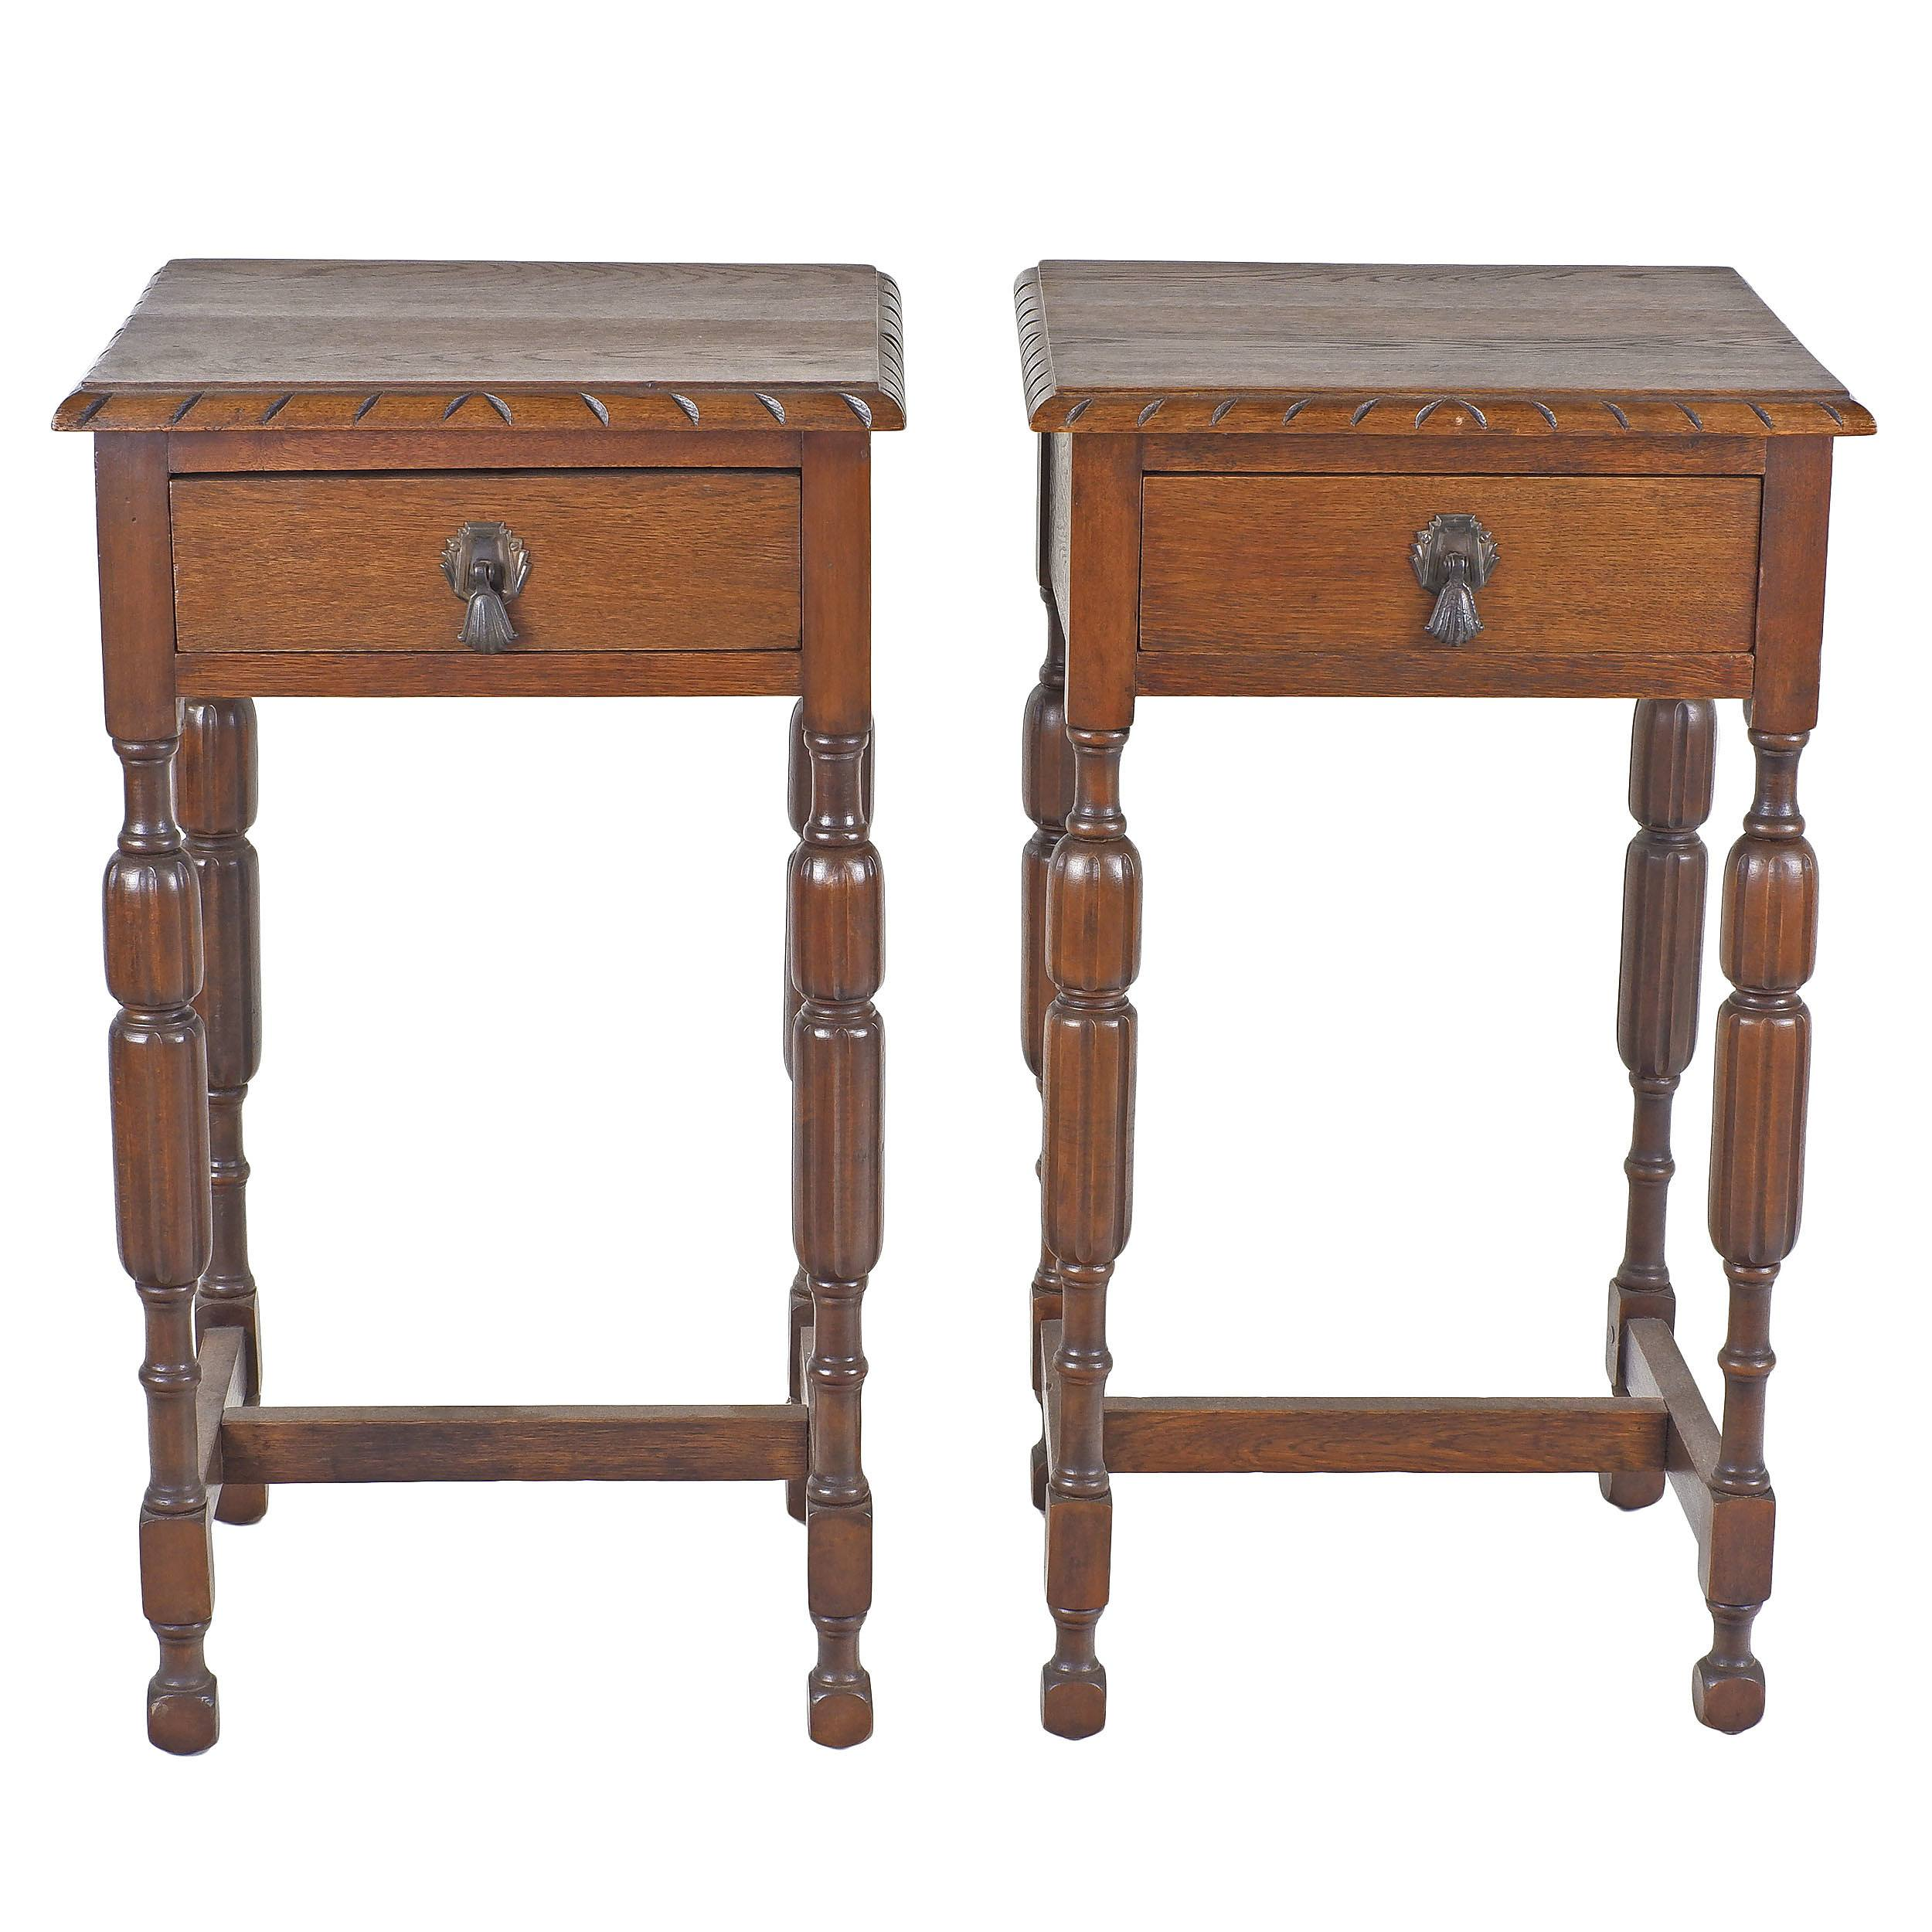 'Pair of Oak Bedside Tables 2nd Quarter 20th Century'